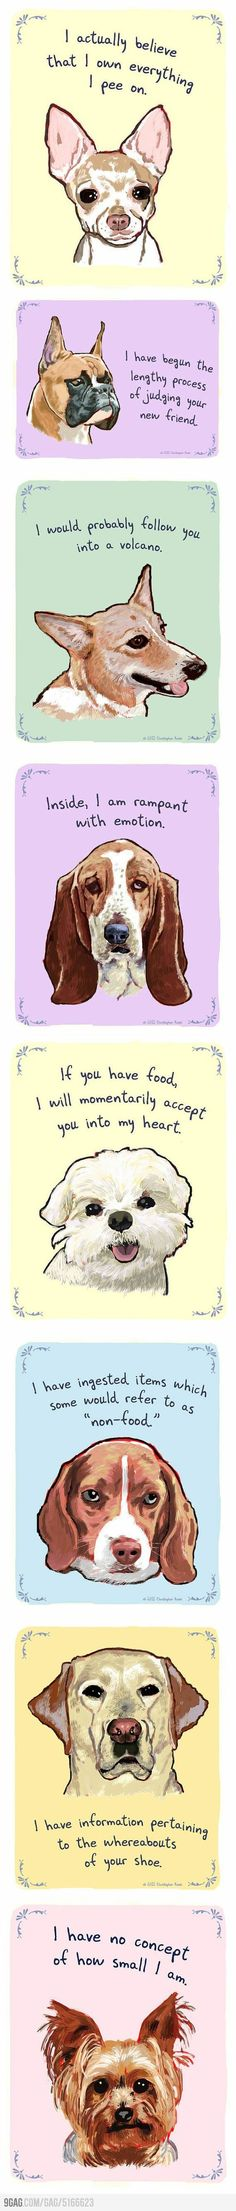 Dog thoughts.